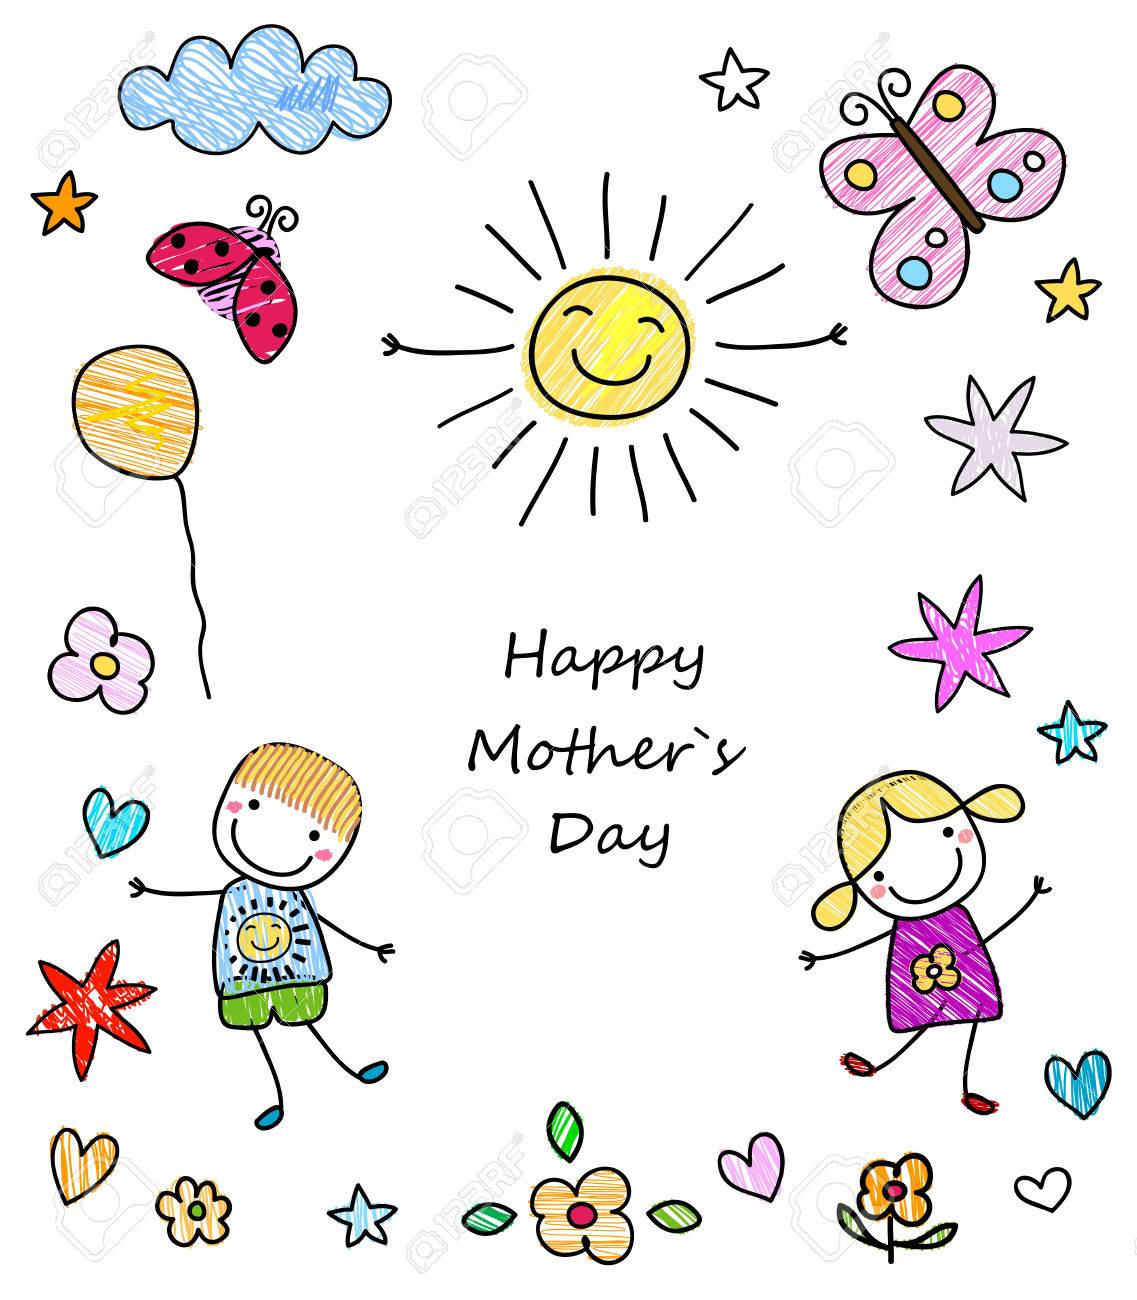 happy mother`s day card - 39348613